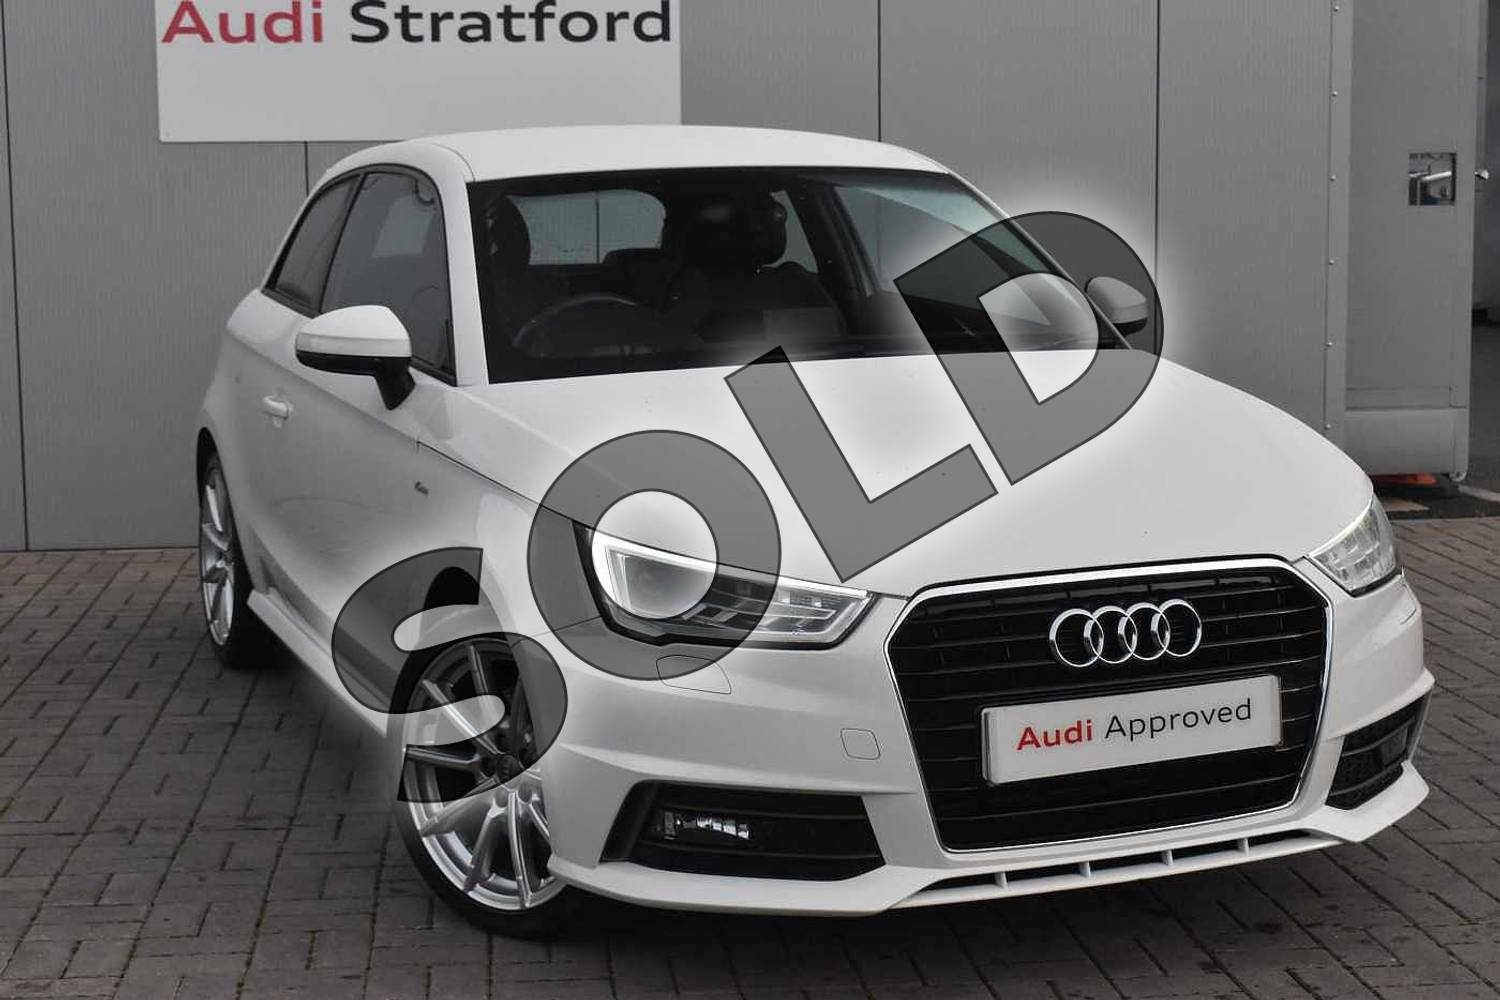 2017 Audi A1 Hatchback 1.4 TFSI S Line 3dr in Shell White at Stratford Audi